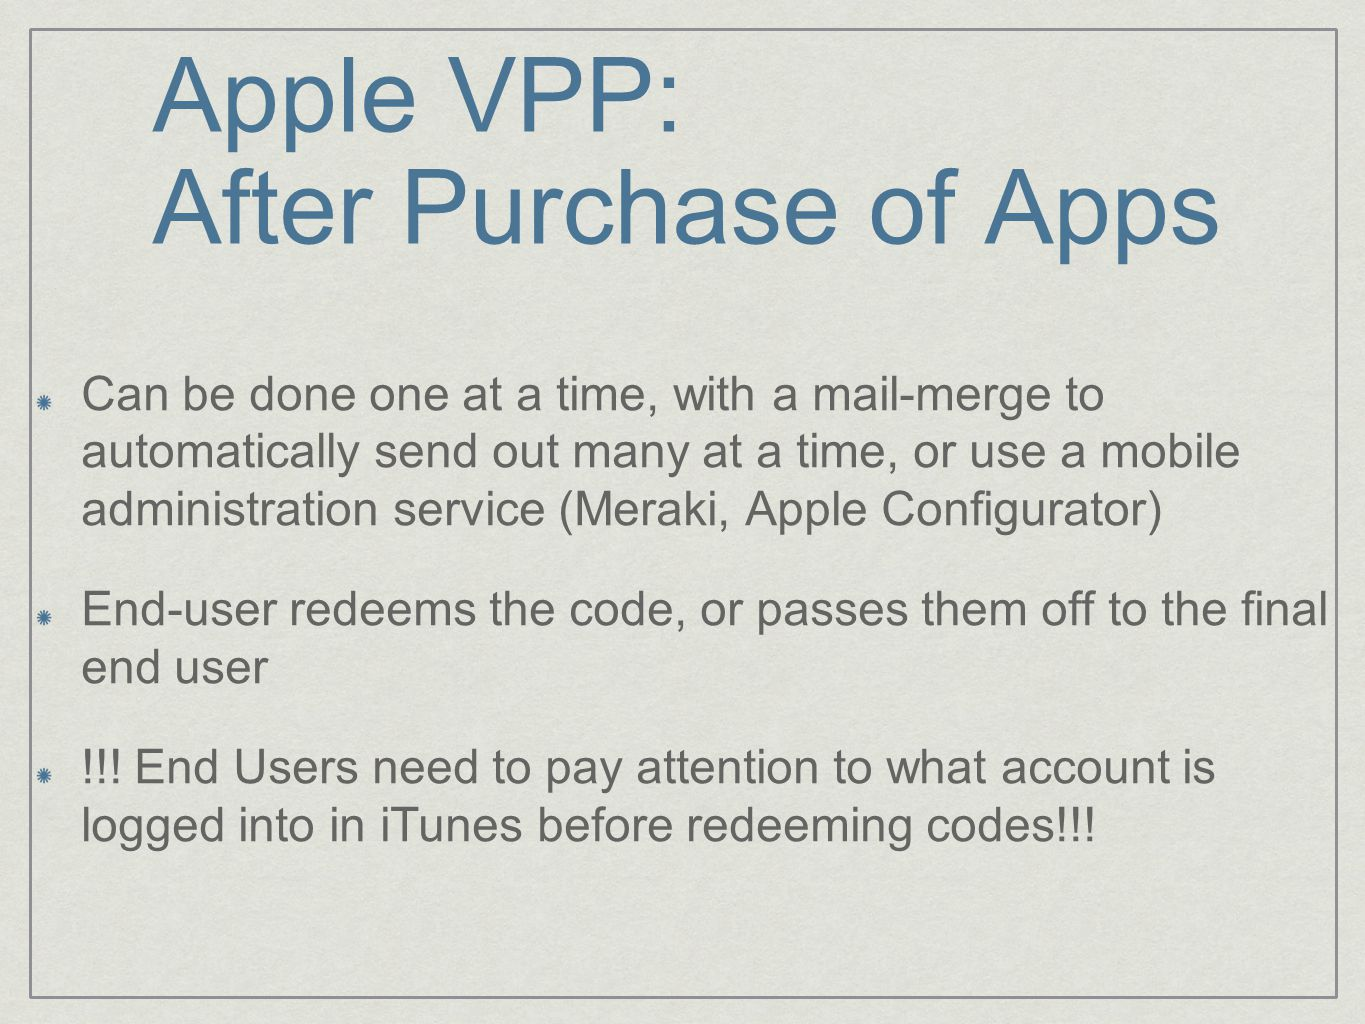 Apple VPP: After Purchase of Apps Can be done one at a time, with a mail-merge to automatically send out many at a time, or use a mobile administration service (Meraki, Apple Configurator) End-user redeems the code, or passes them off to the final end user !!.